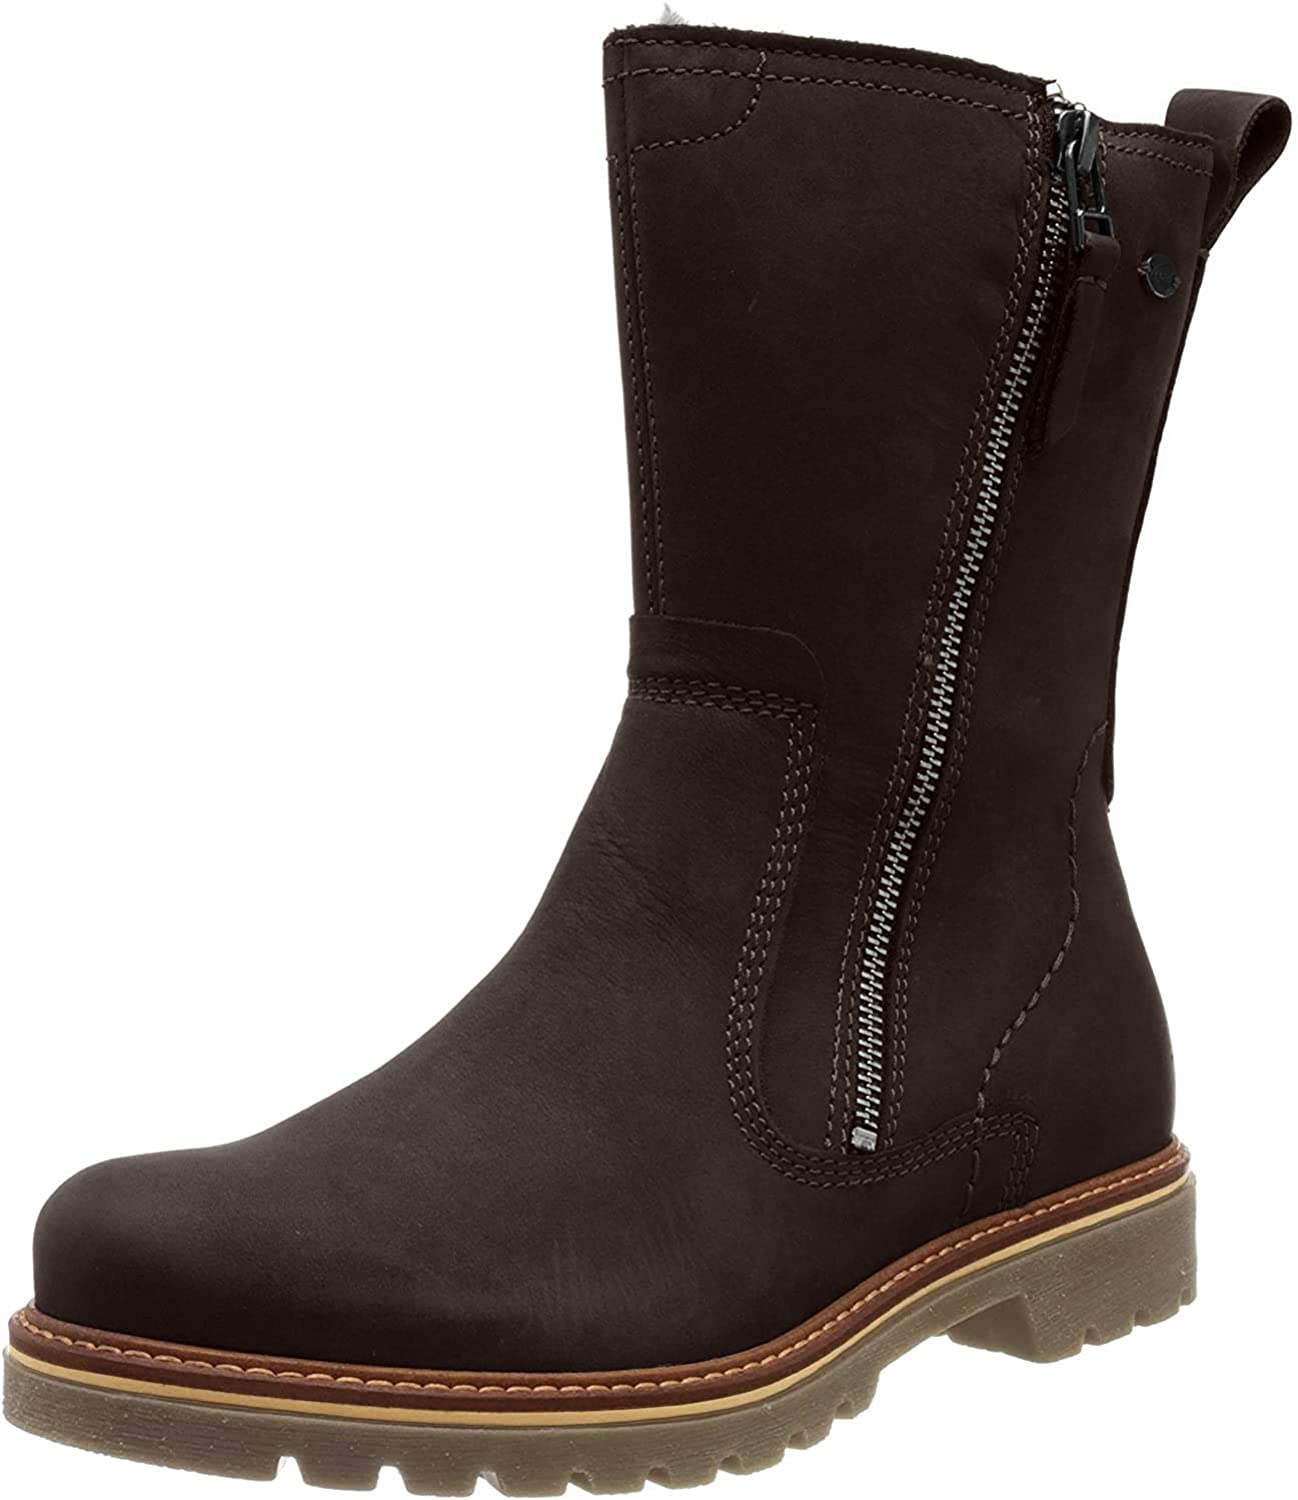 Camel Active Ankle Boots Women 873.79